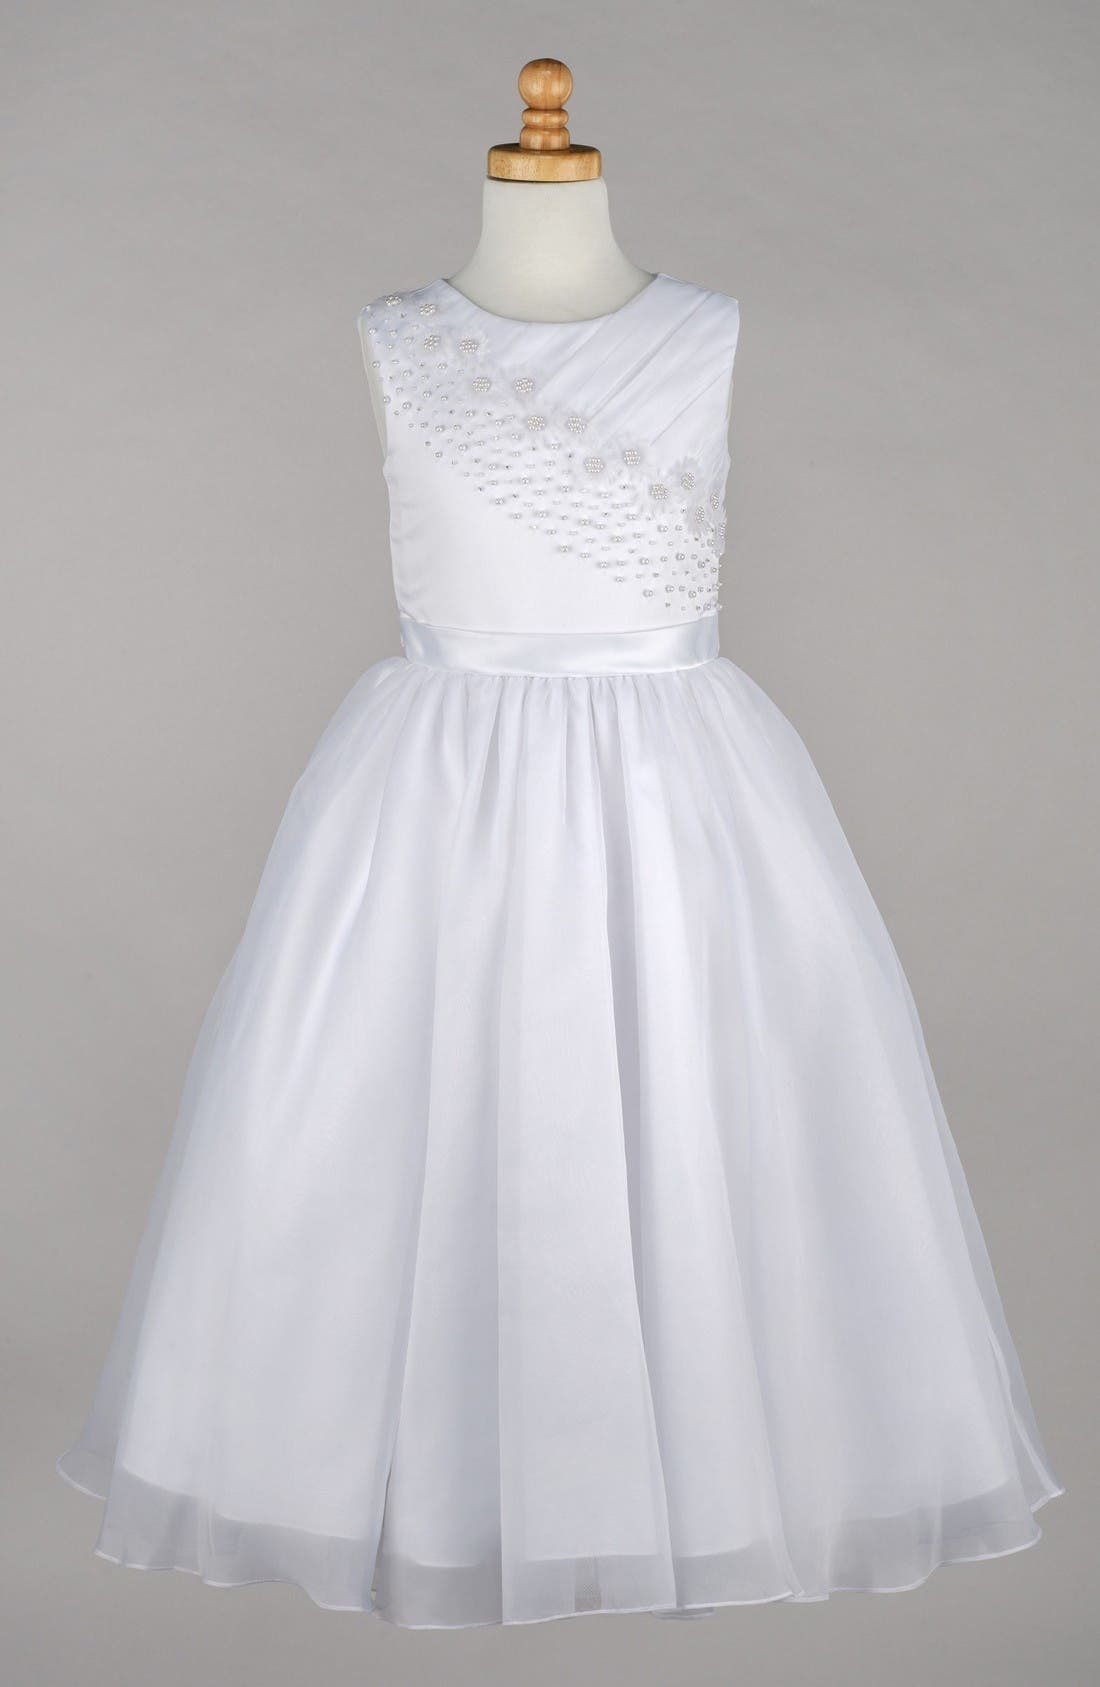 Main Image - Lauren Marie Beaded Daisy Bodice First Communion Dress (Little Girls & Big Girls)